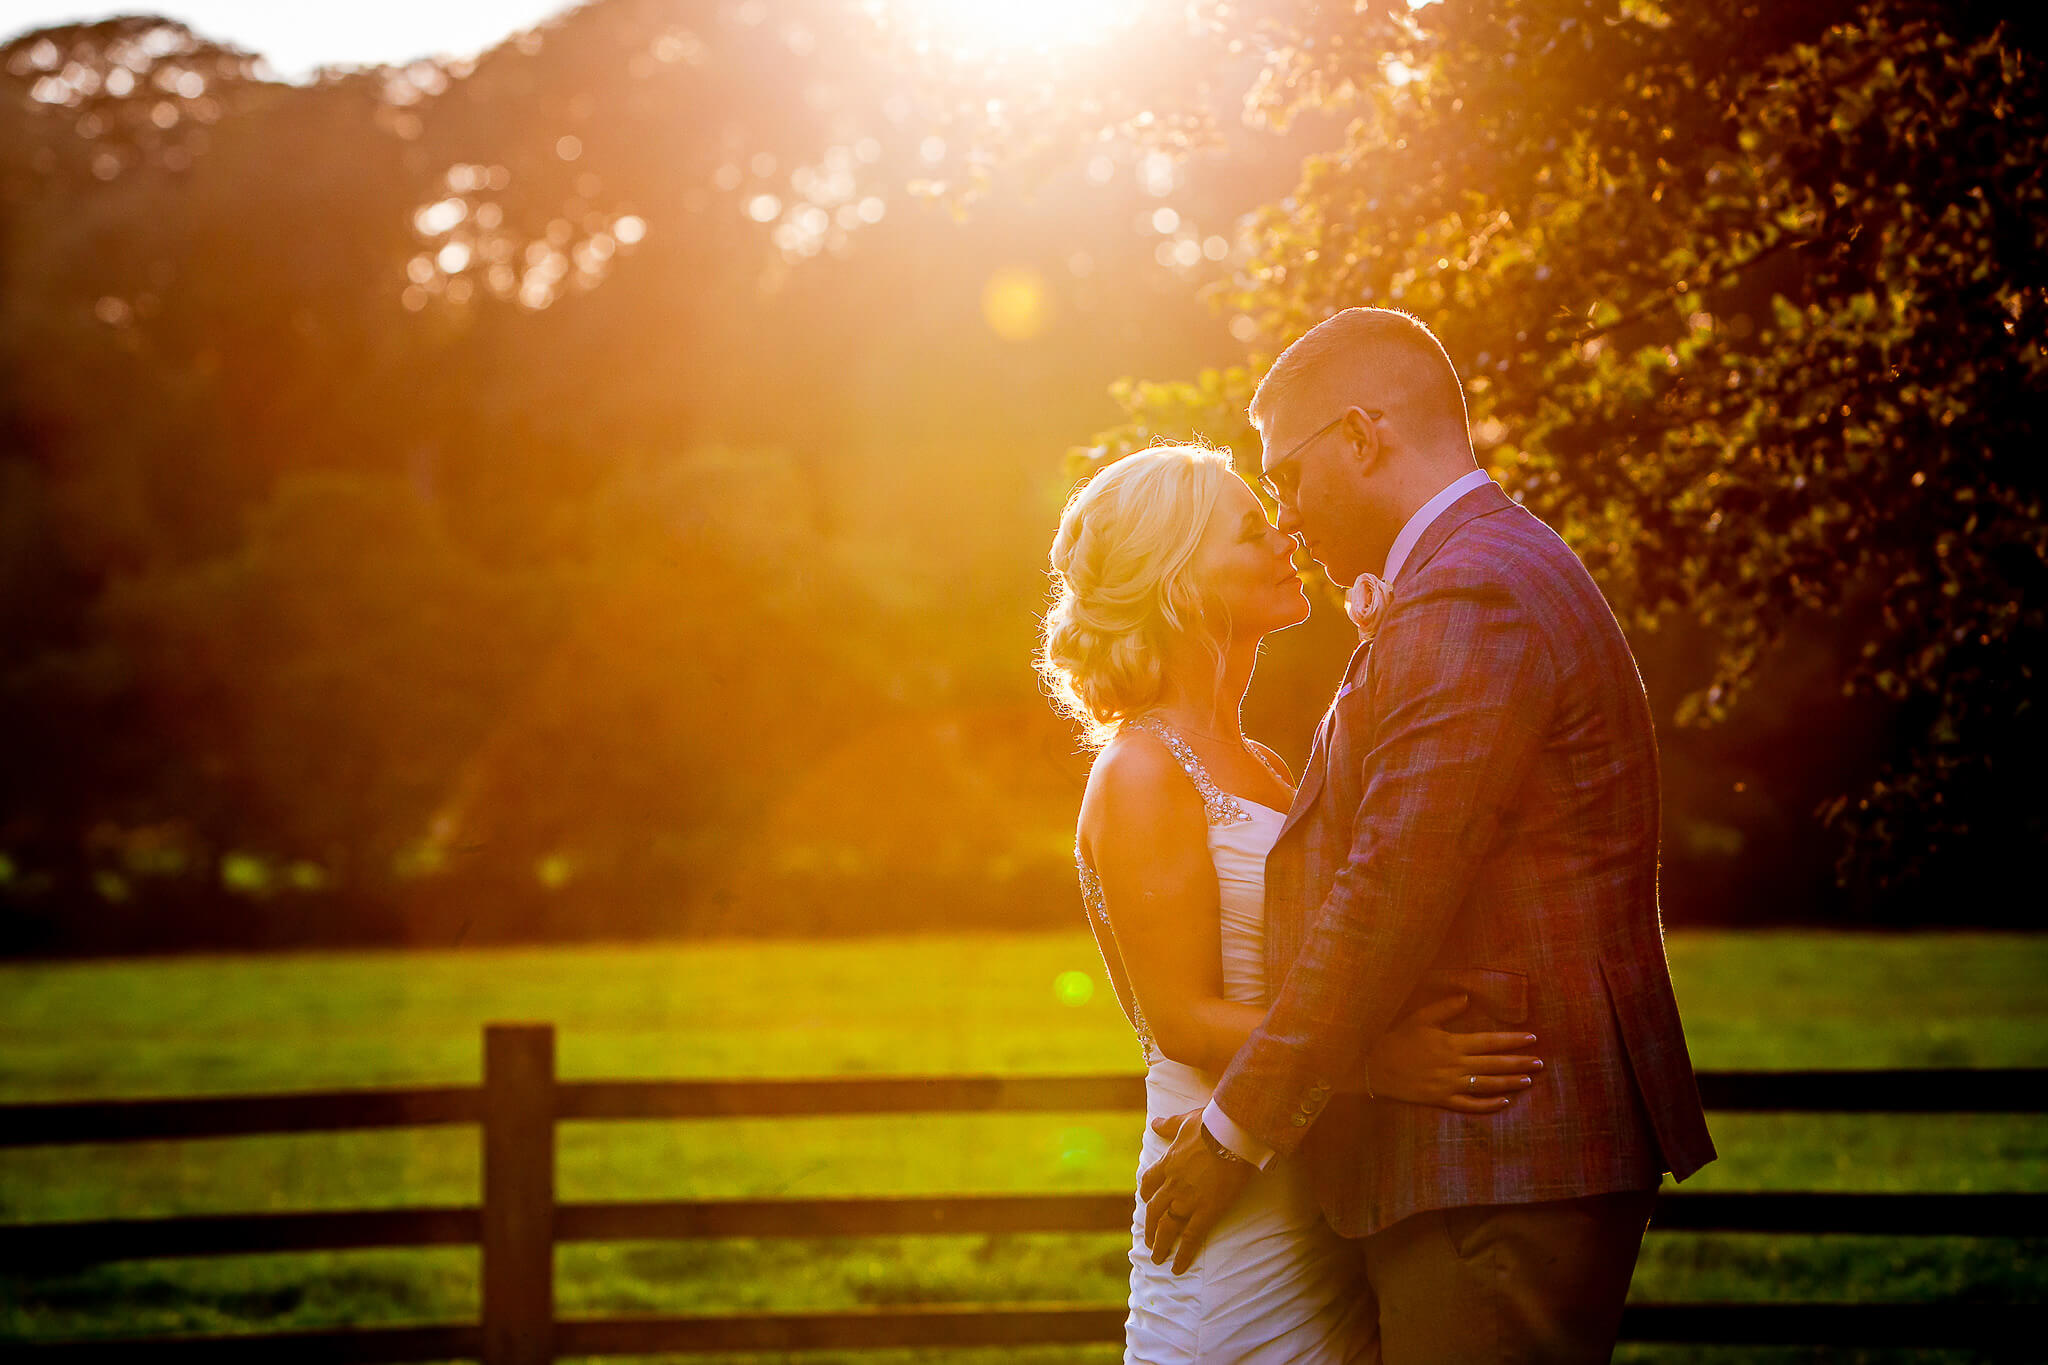 best-wedding-photographers-uk-europe-stanbury-photography-146